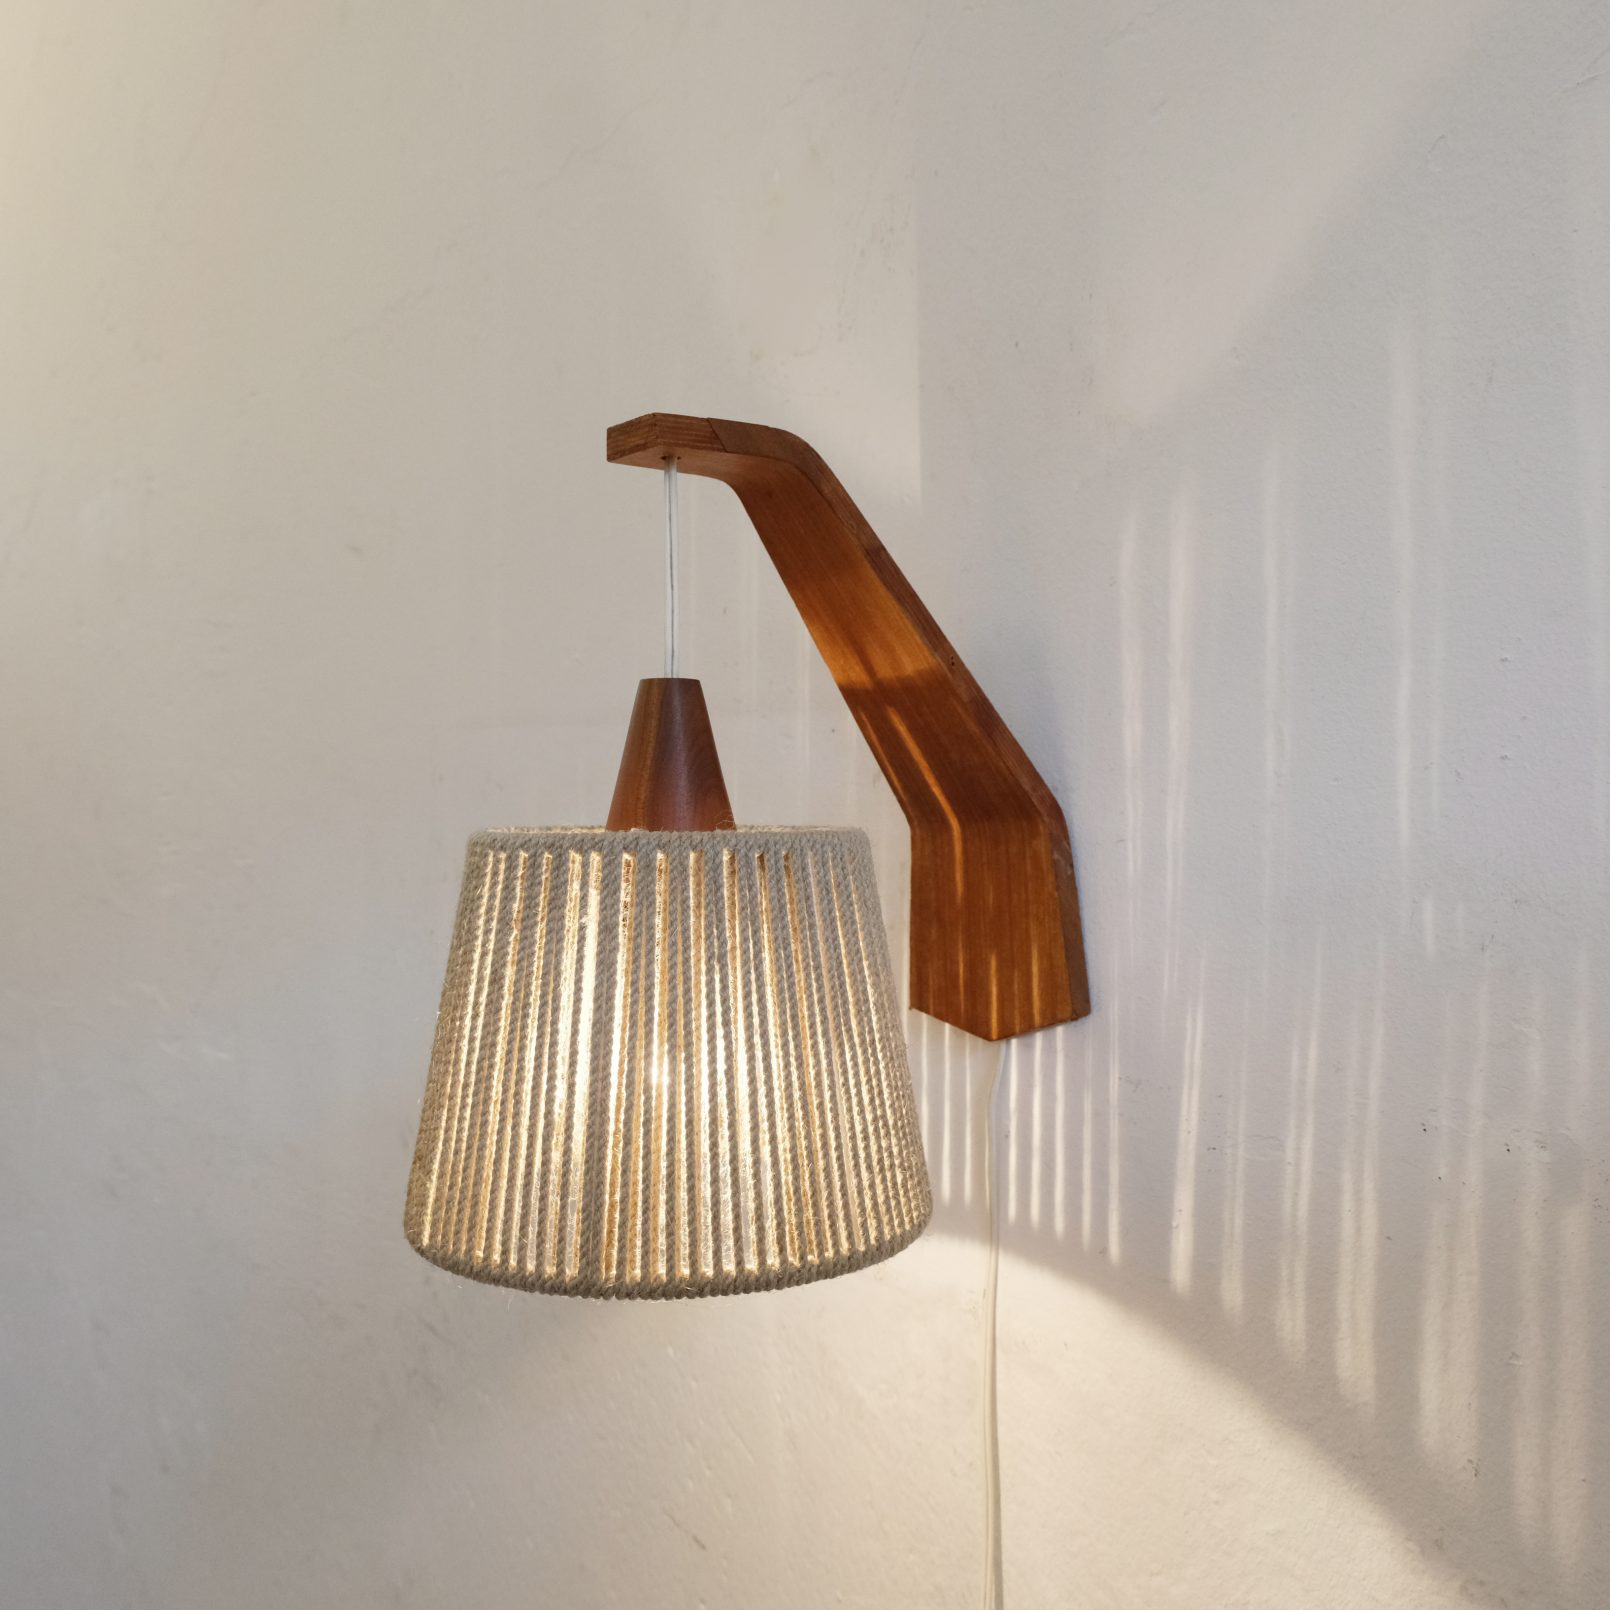 Wood and rope wall lamp from the sixties.